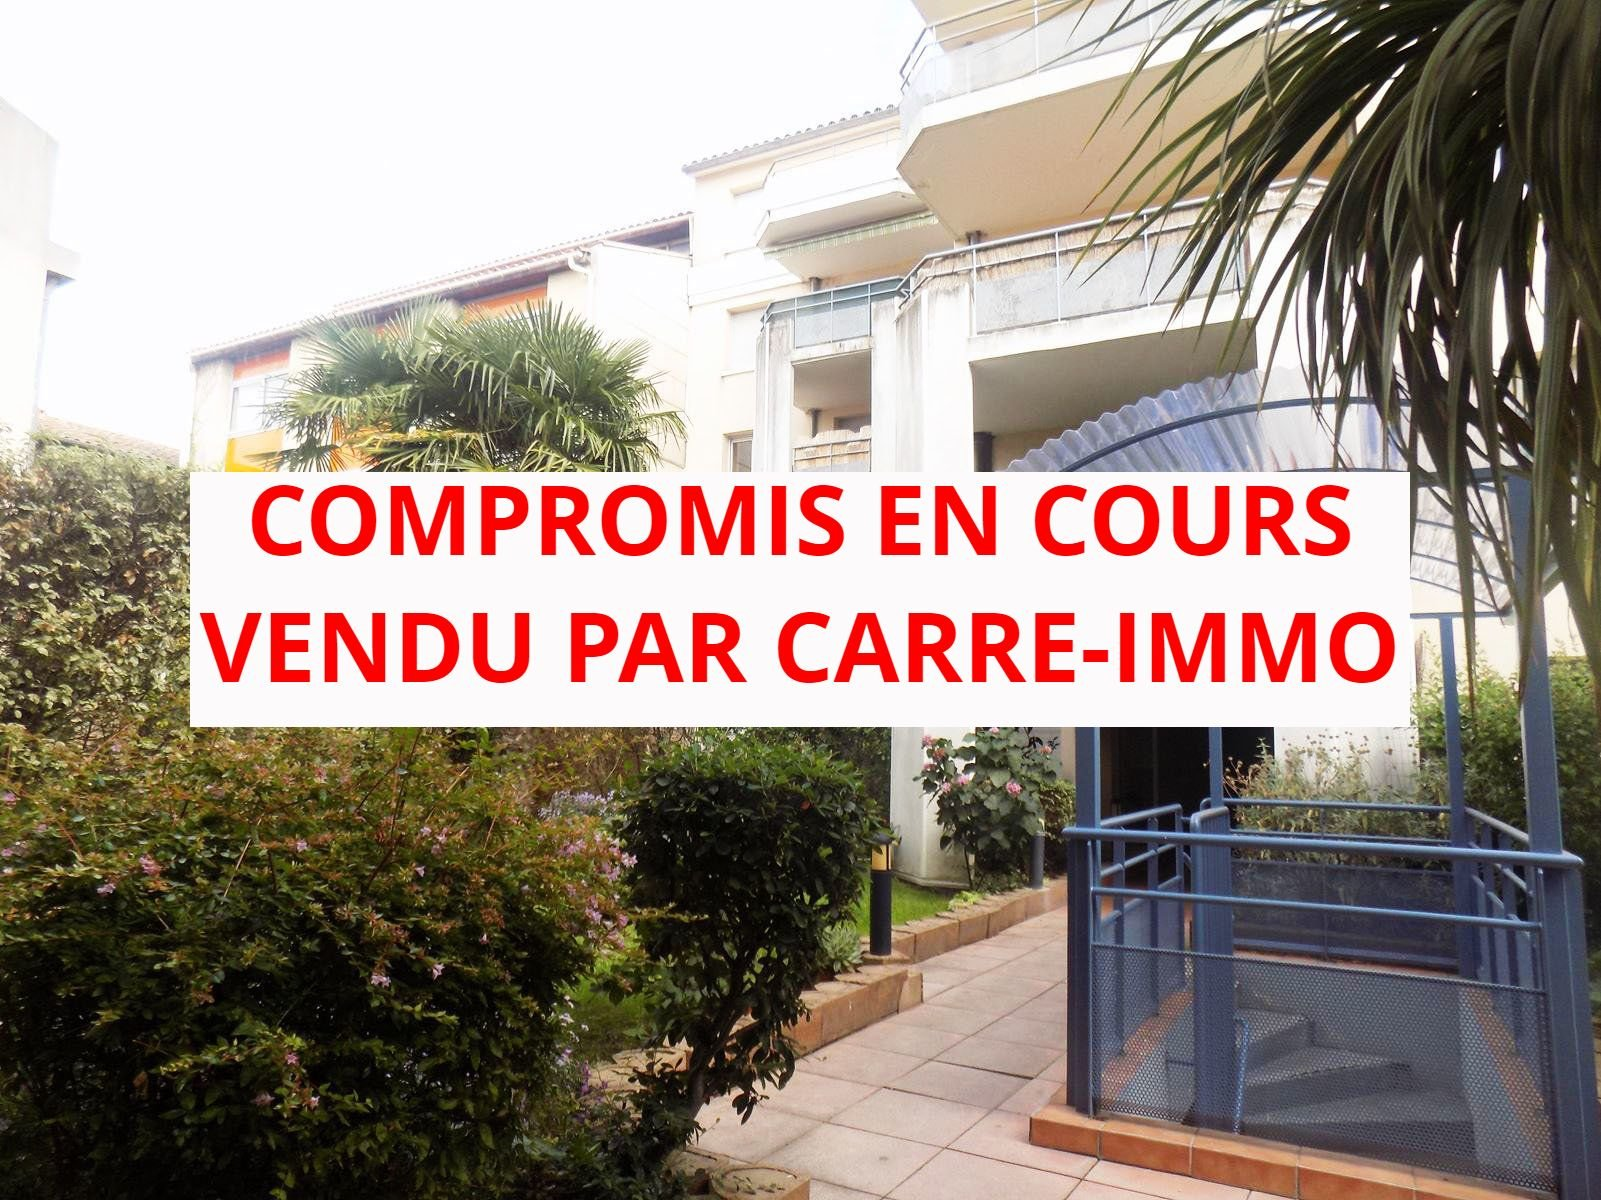 Appartement T2 - 31000 TOULOUSE